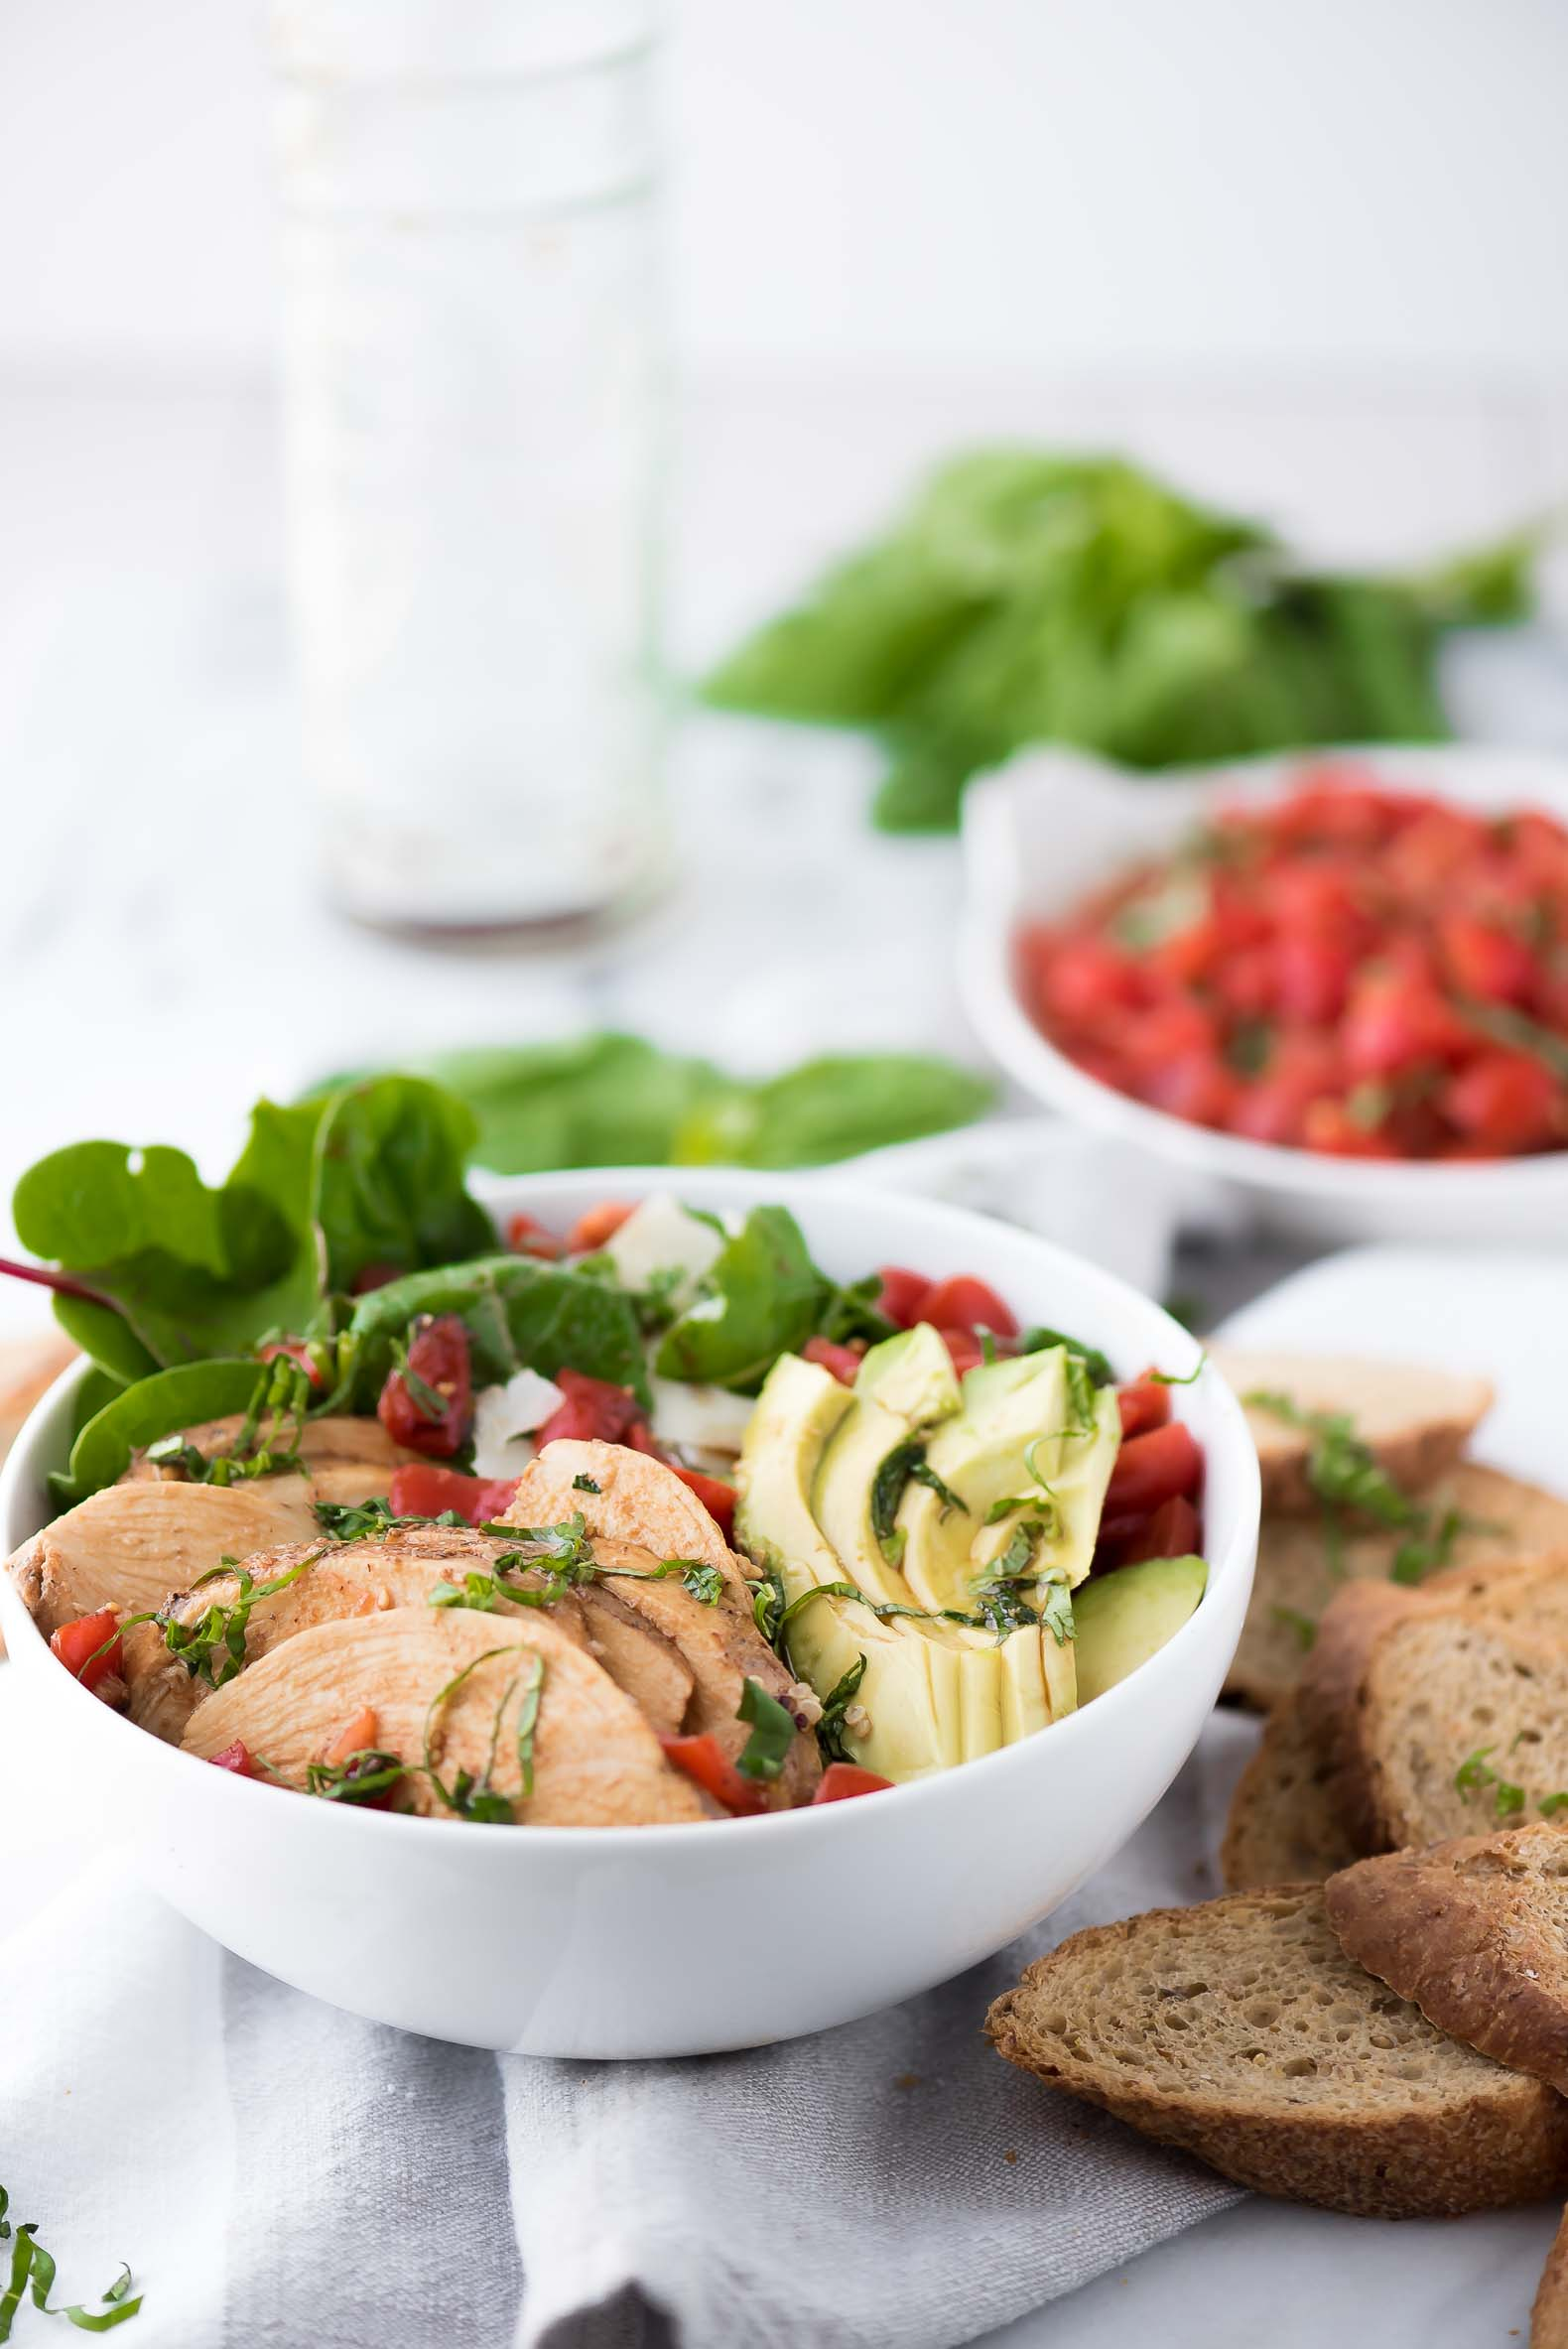 Avocado Bruschetta Chicken Salad, Gluten free, dinners, healthy living, avocado, healthy, low carb, tomatoes, recipes, meals, easy, simple,